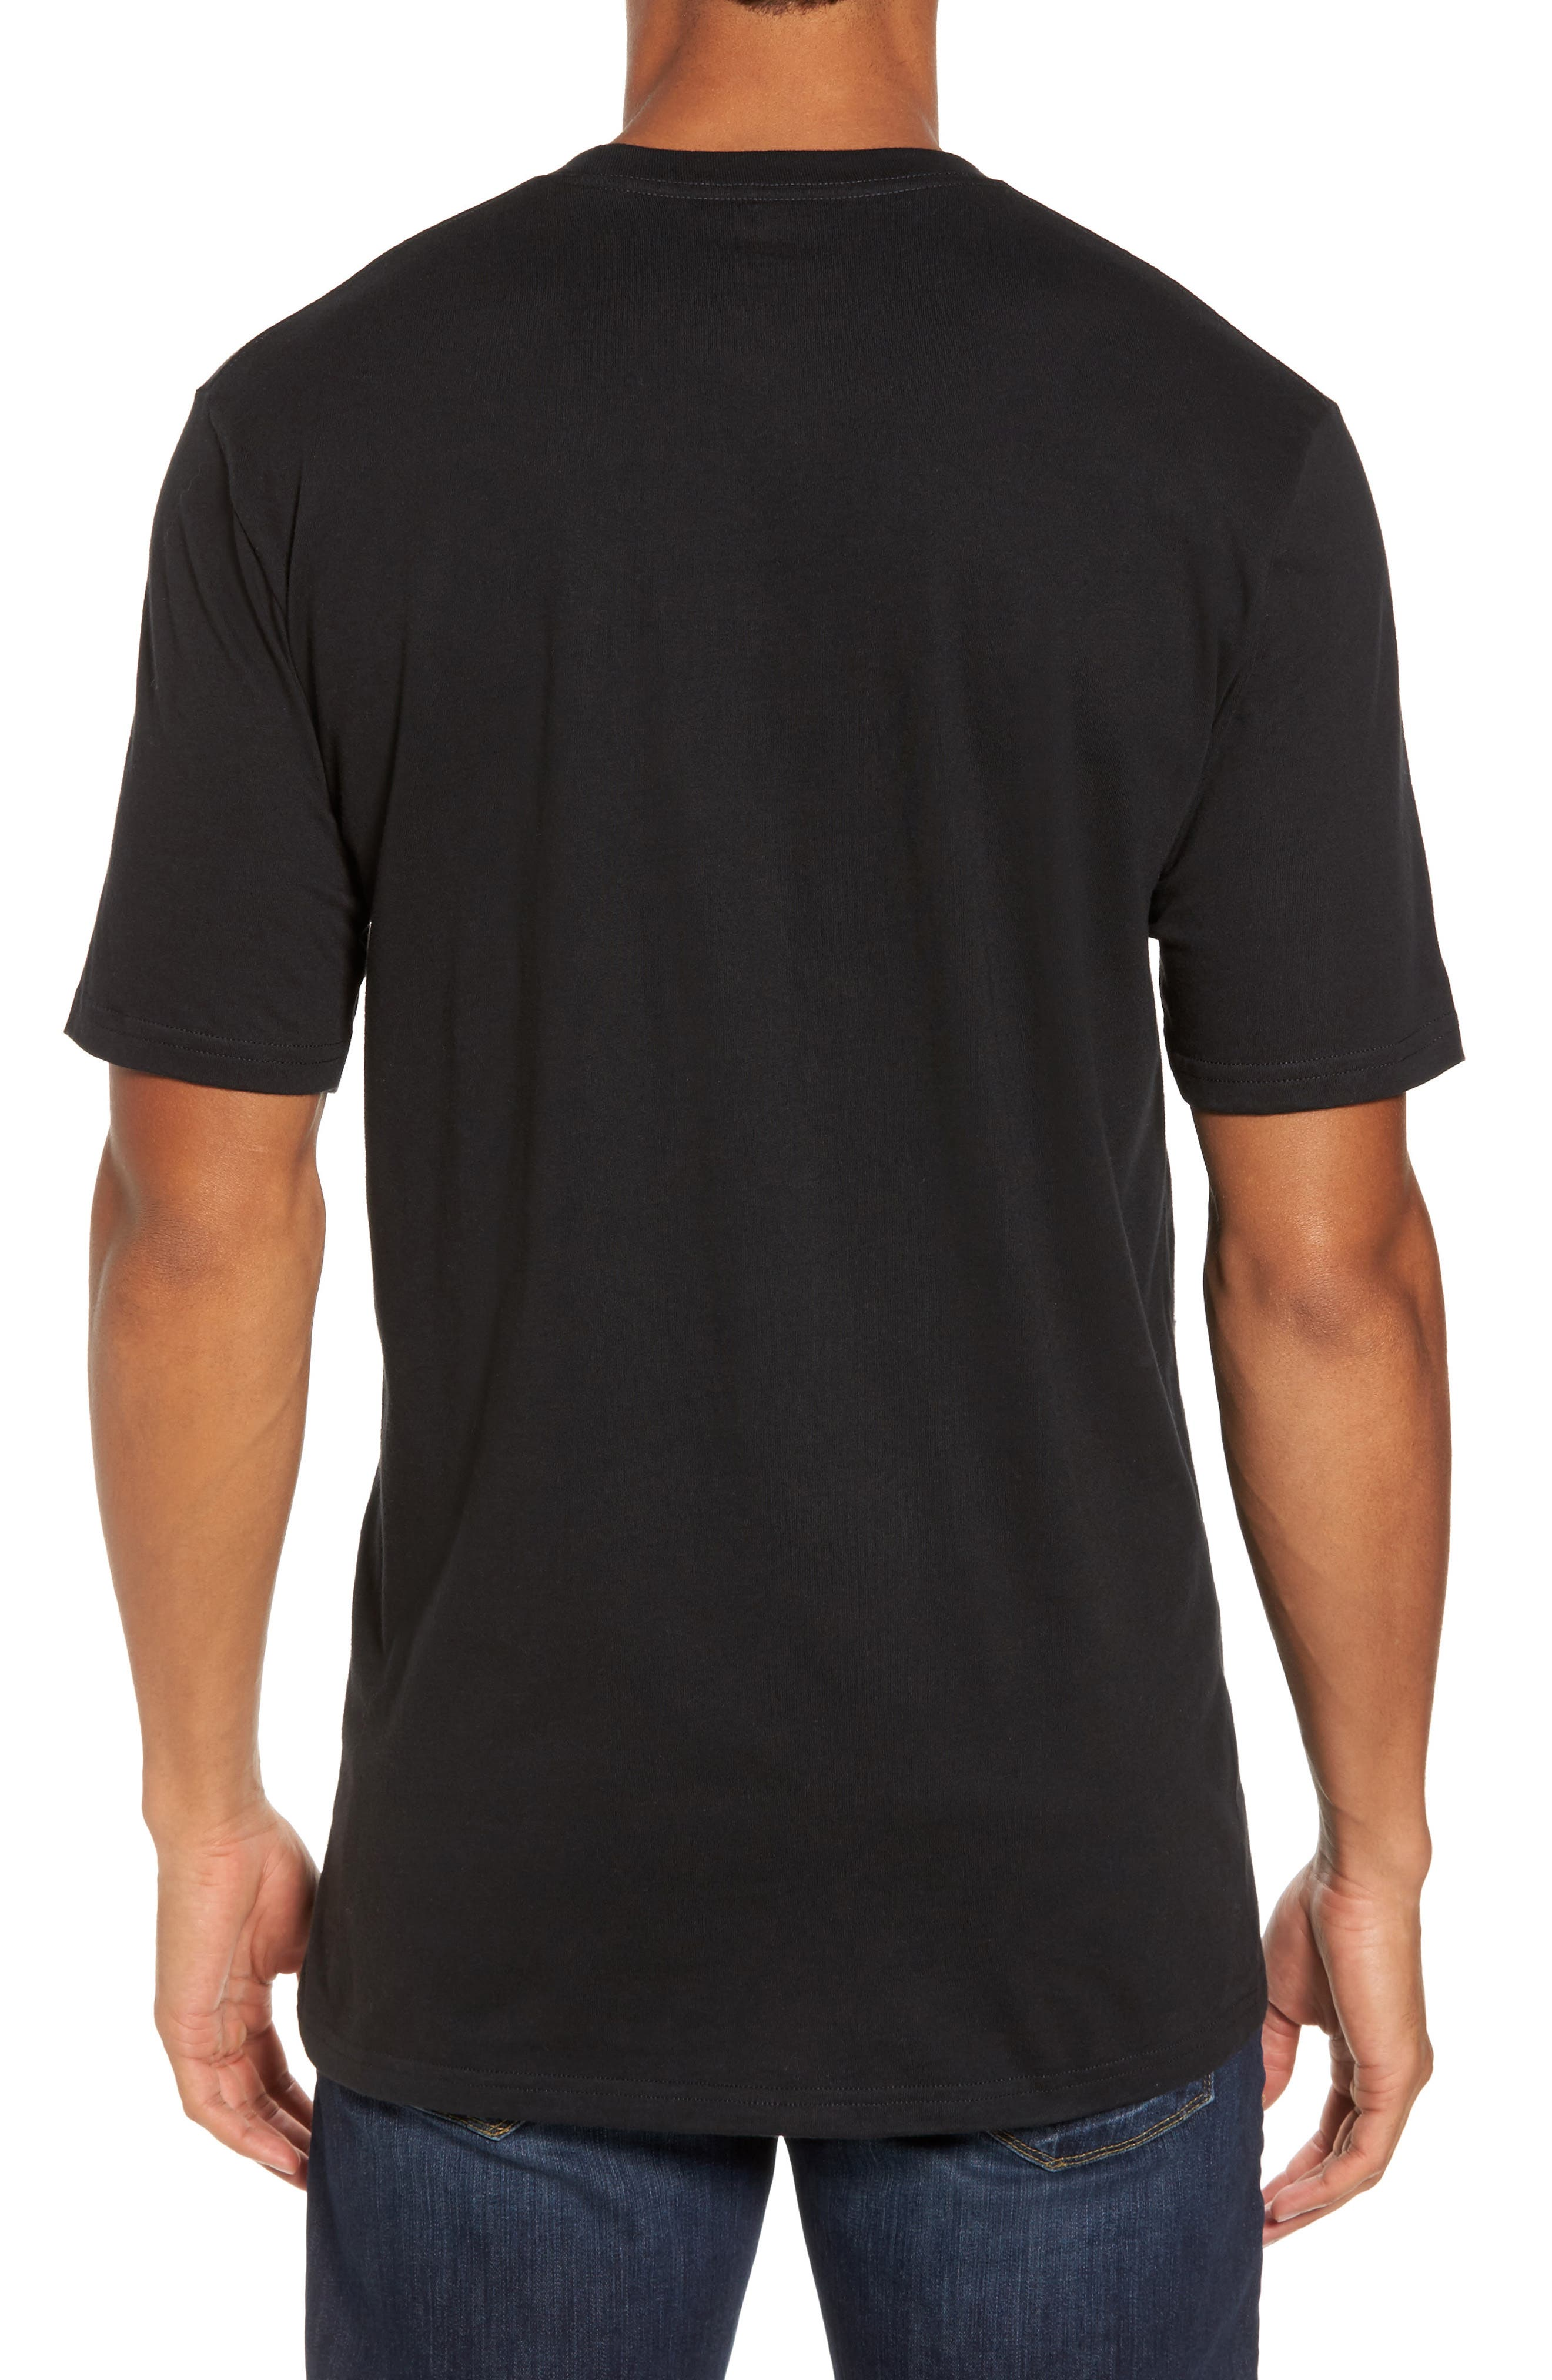 Alternate Image 2  - The North Face International Collection Crewneck T-Shirt